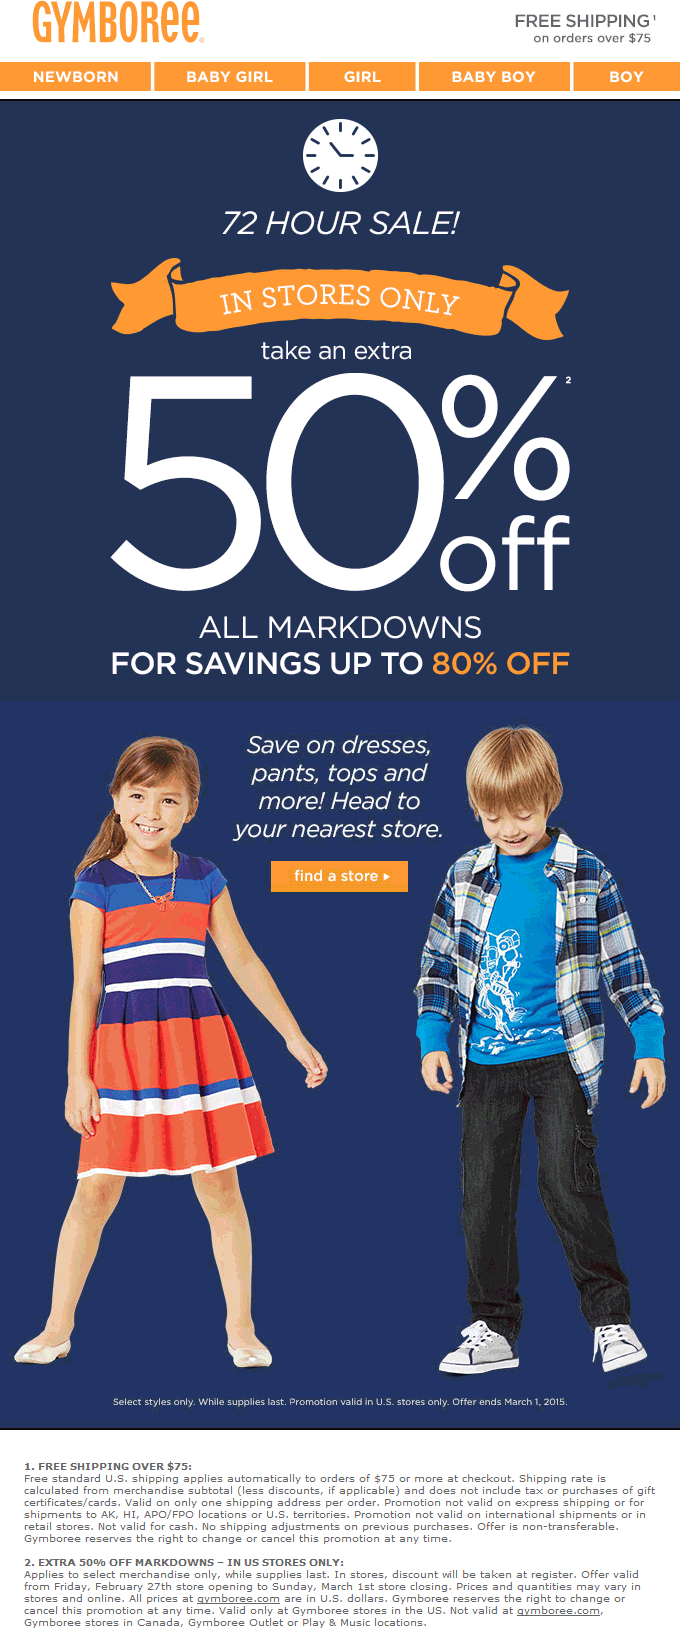 Gymboree Coupon July 2018 Extra 50% off sale items at Gymboree